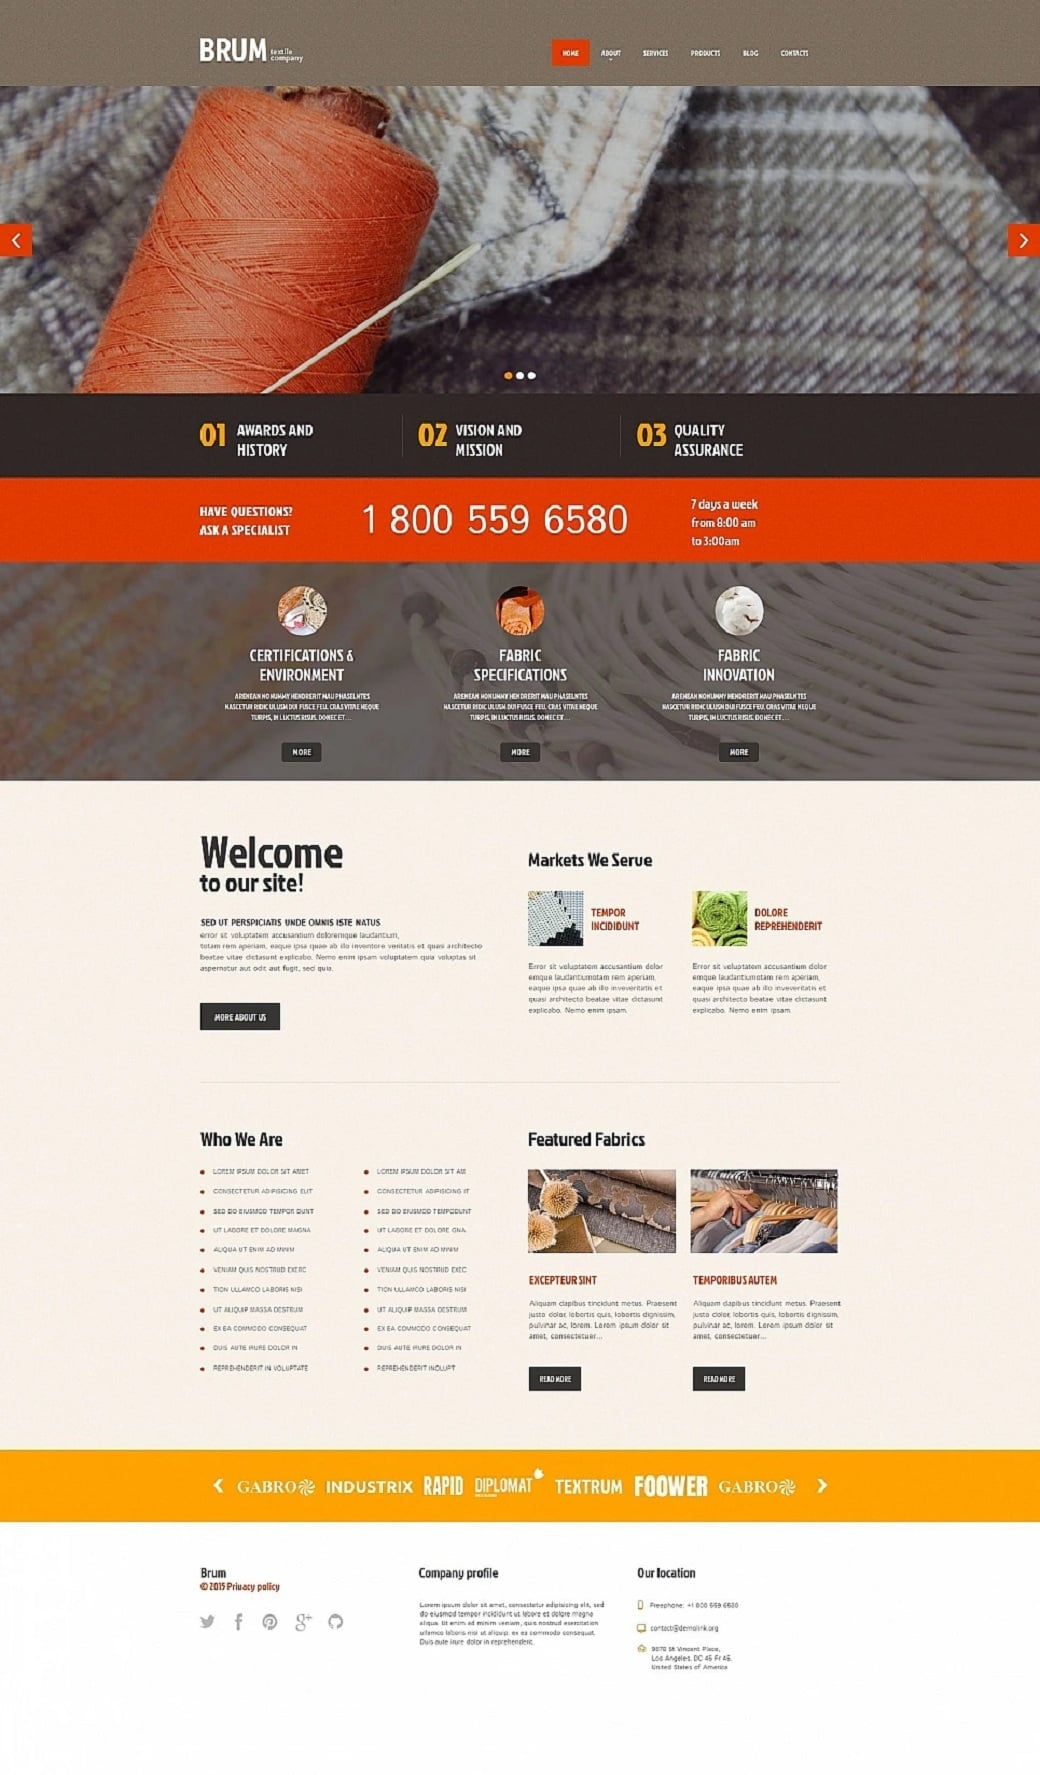 How to make an industrial website - brum